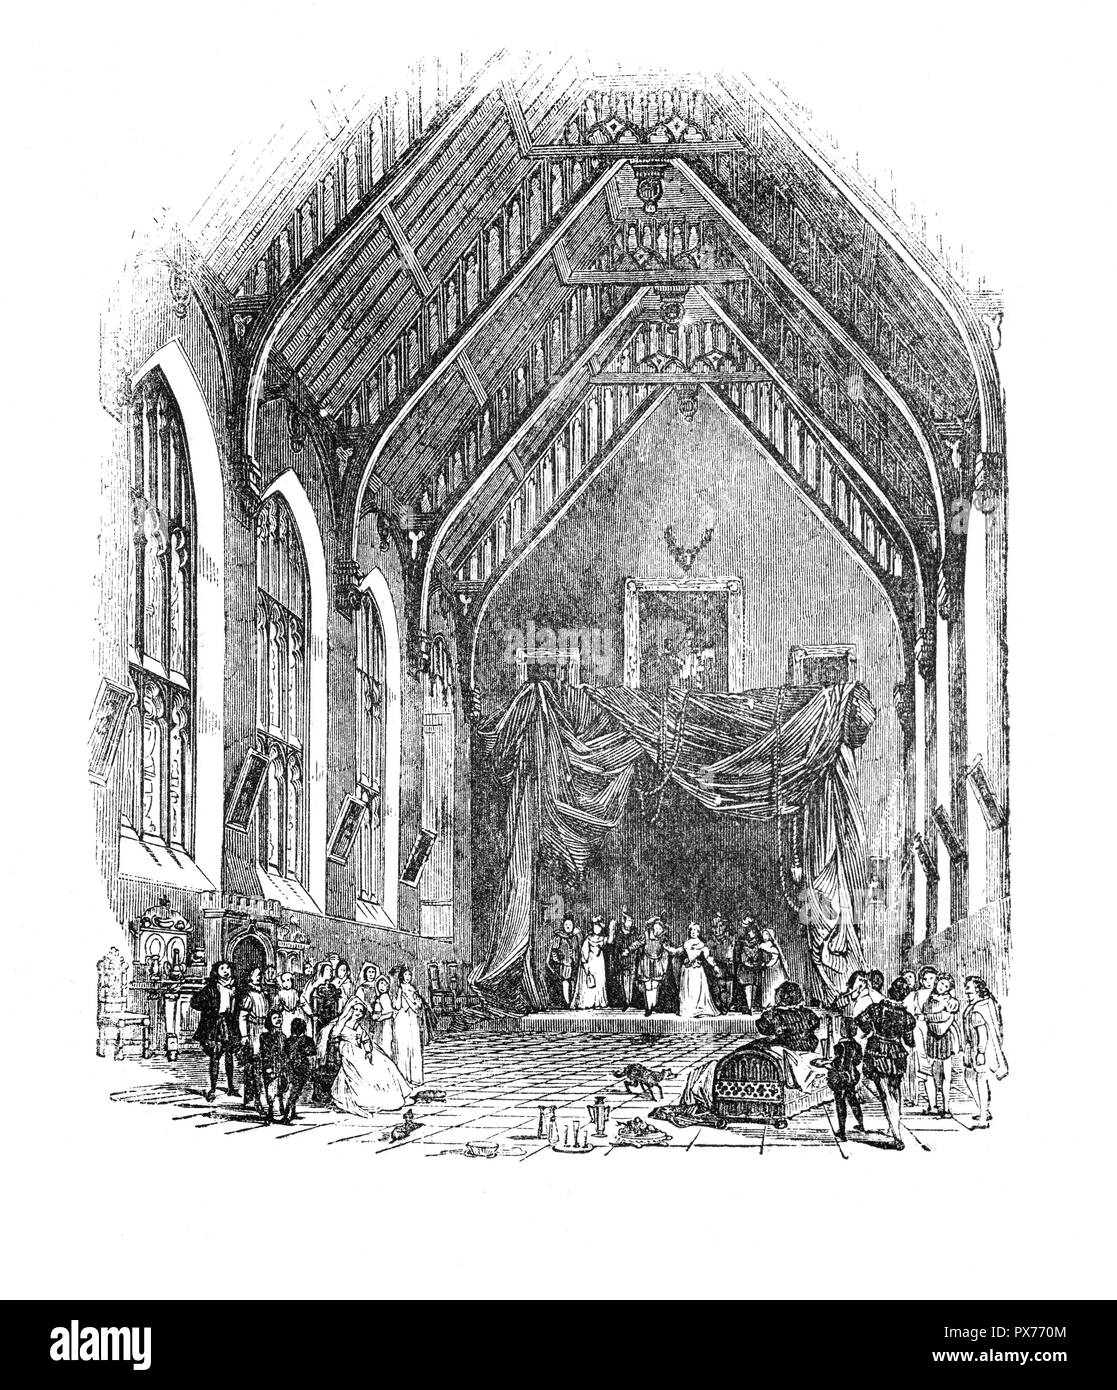 A performance by Itinerant Players.  By the later sixteenth century, a well-defined groups of them travelled extensively by road throughout the realm reinforced links between communities located across the English regions.  Moreover, while distinctive local entertainment traditions persisted in many places, the journeys of Elizabethan and Jacobean touring performers provided the means by which provincial audiences shared in the performance arts developed at Court and in the metropolis. - Stock Image